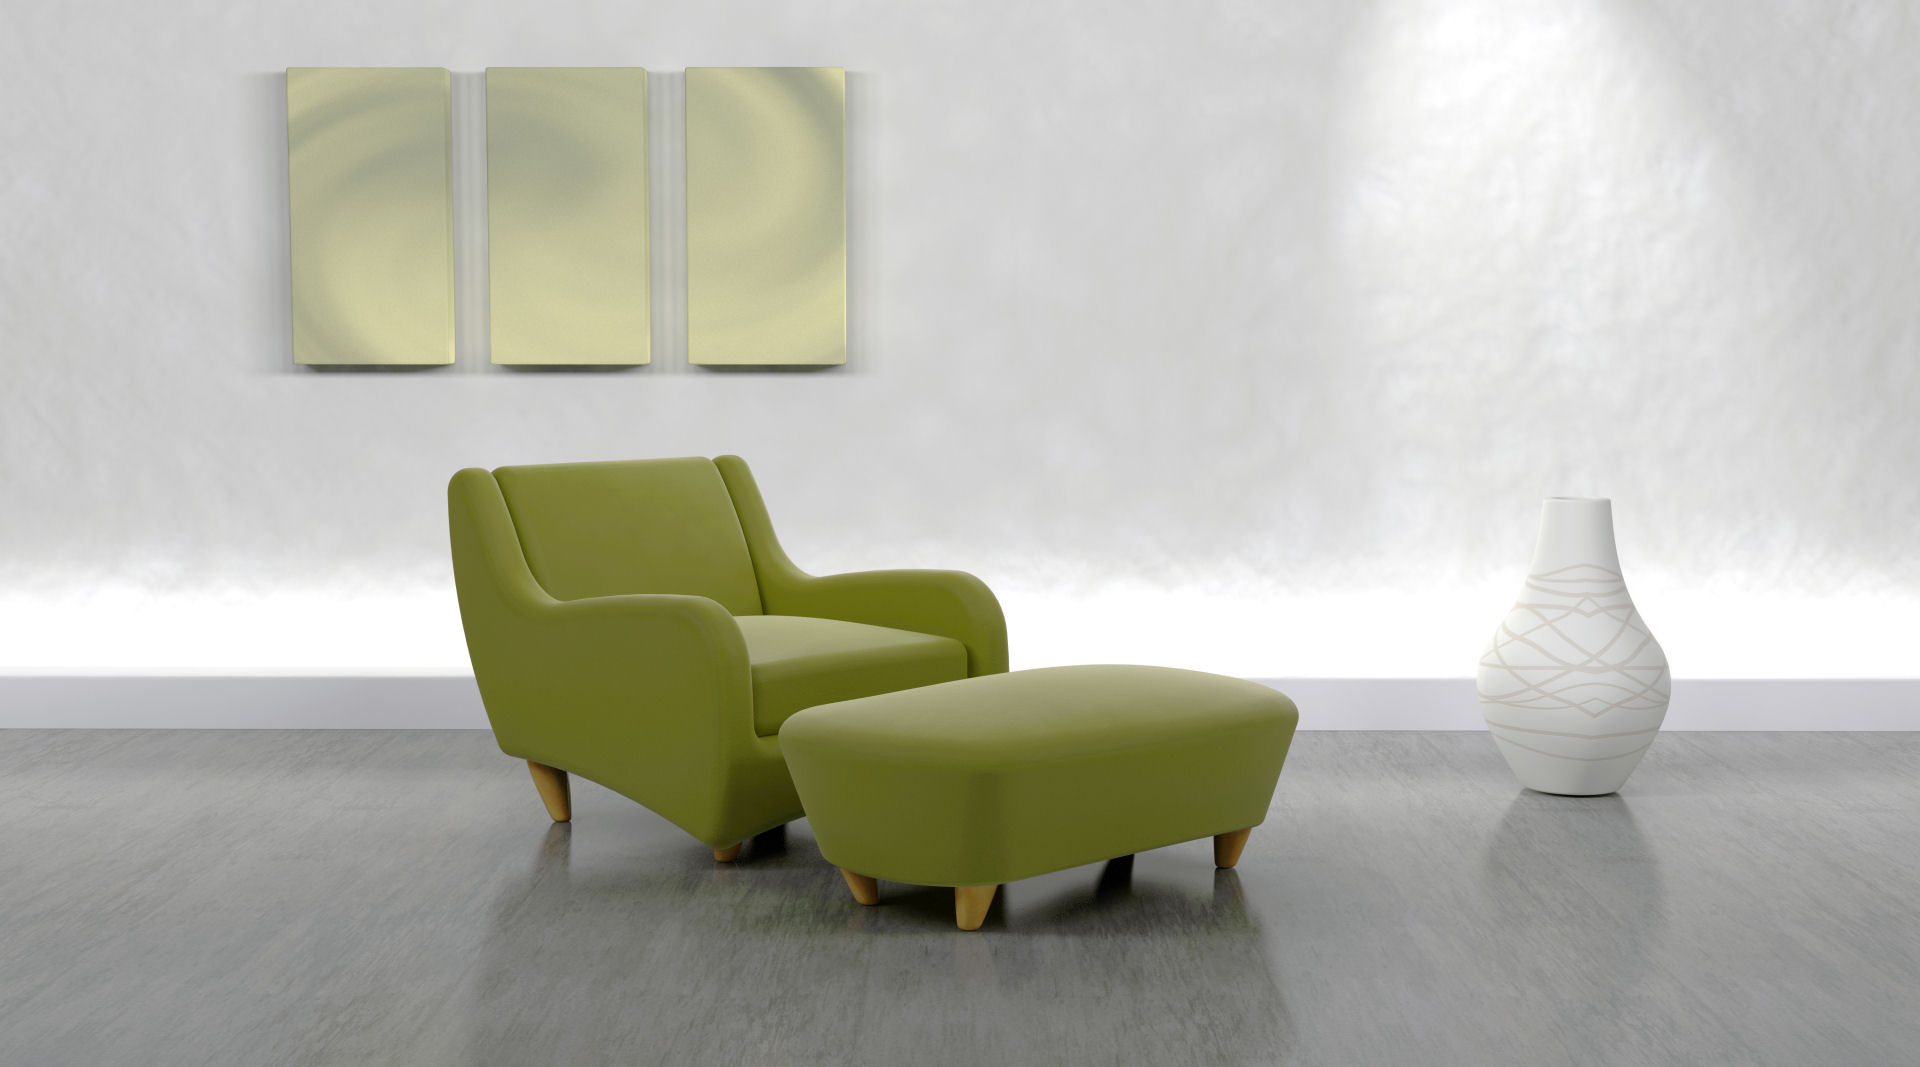 3d render of contemporary arm chair and ottoman in modern setting